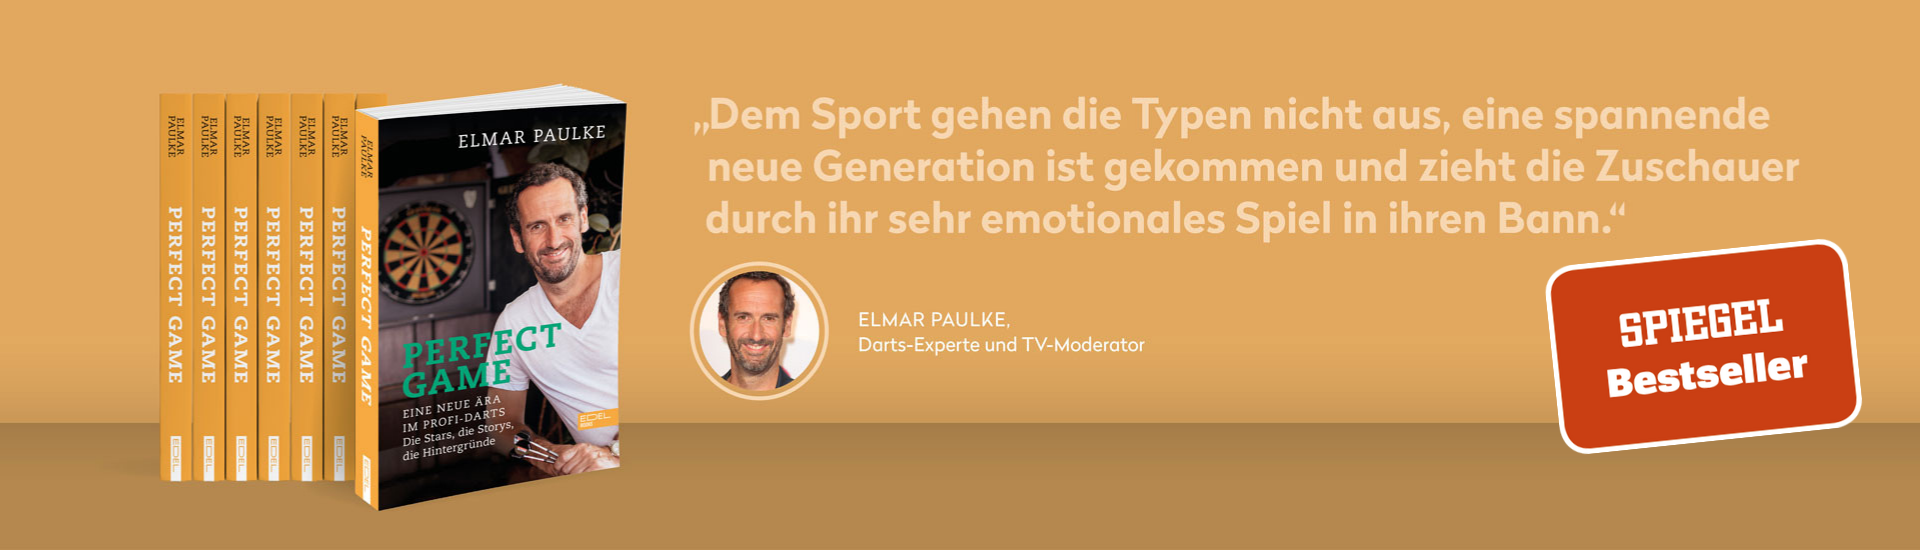 Bestsellerbanner zu Elmar Paulkes perfect game